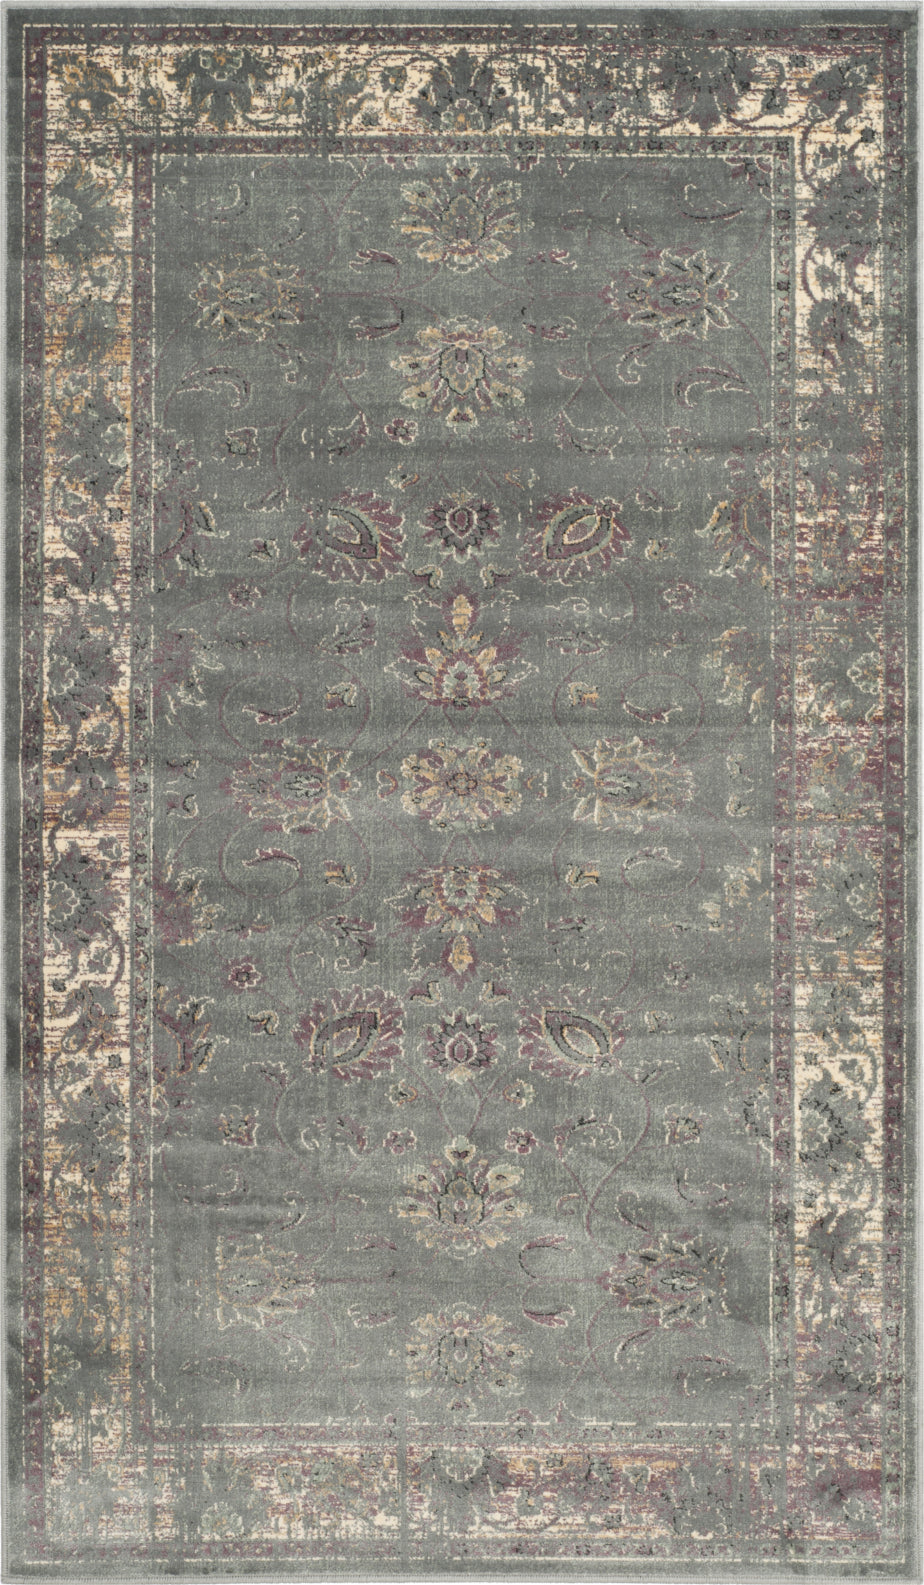 Safavieh Vintage VTG117 Grey/Multi Area Rug main image